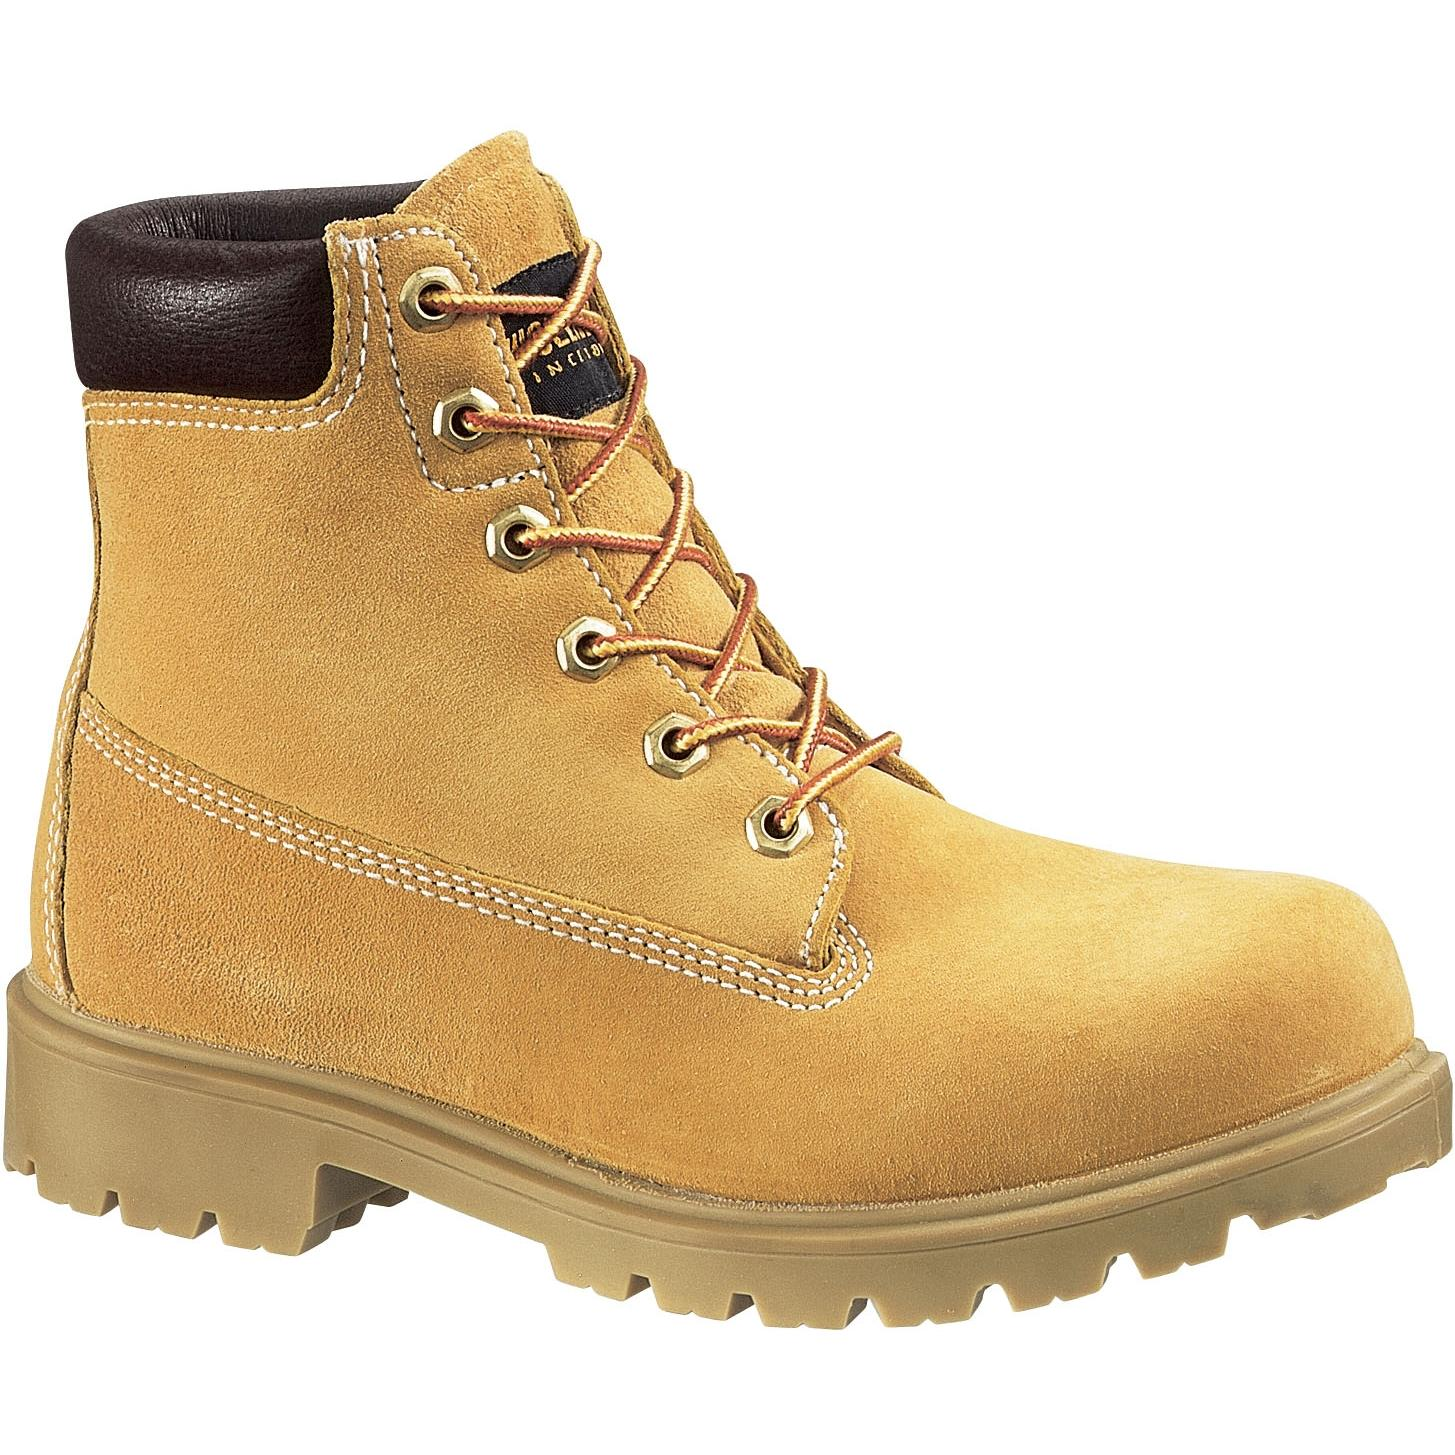 Wolverine Womens 6 Inch Waterproof Insulated Field Work Boots - Gold - Size 7 - Wide